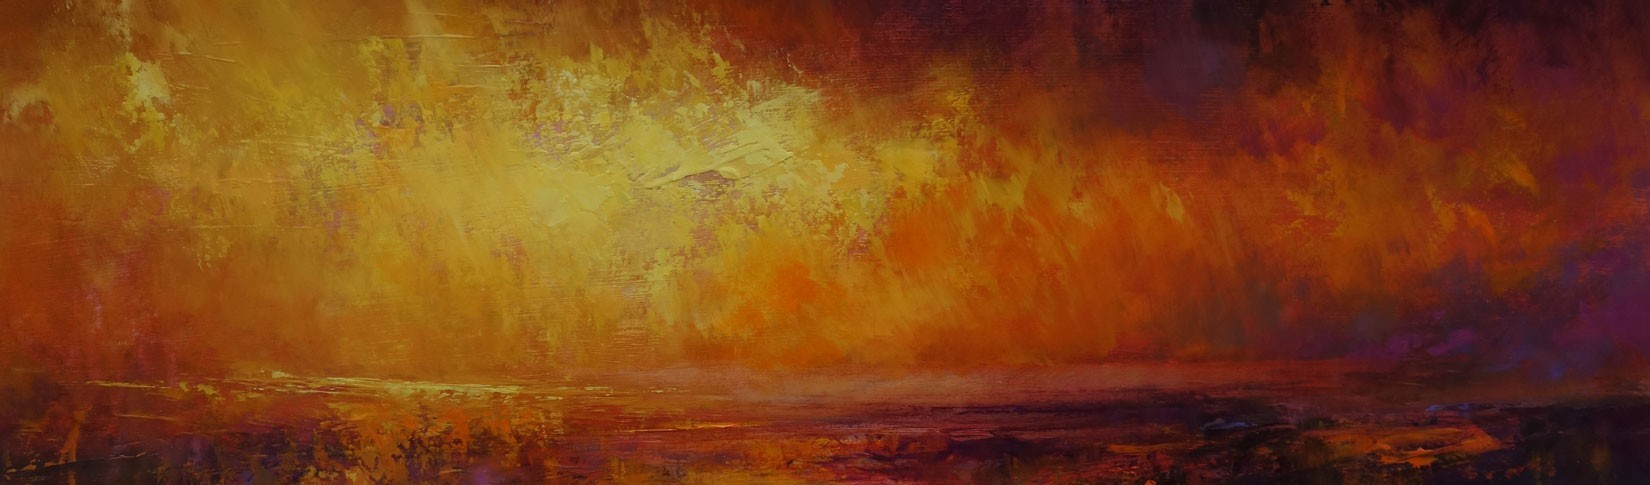 Christmas Exhibition at Tolquhon Gallery 2019